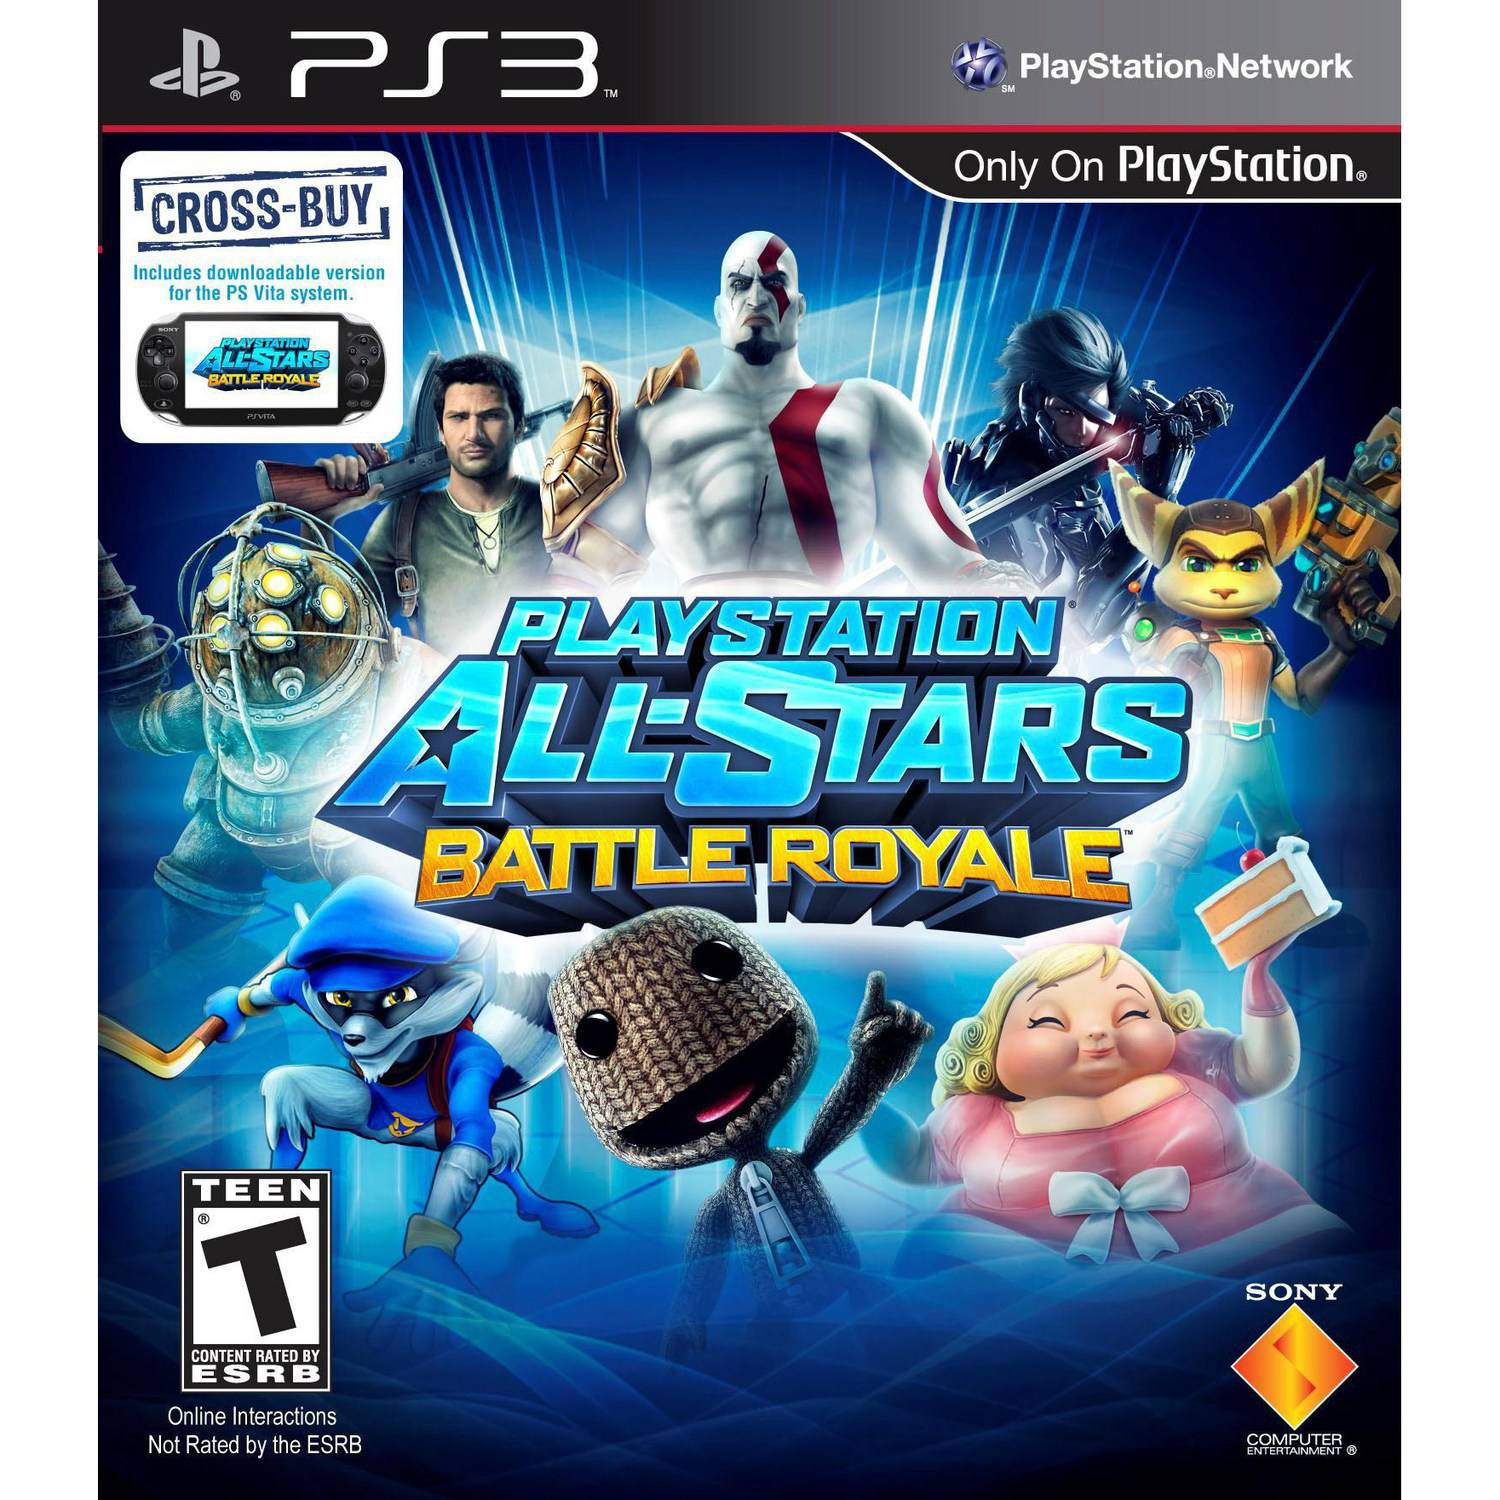 PlayStation All-Stars Battle Royale (PS3) - Pre-Owned